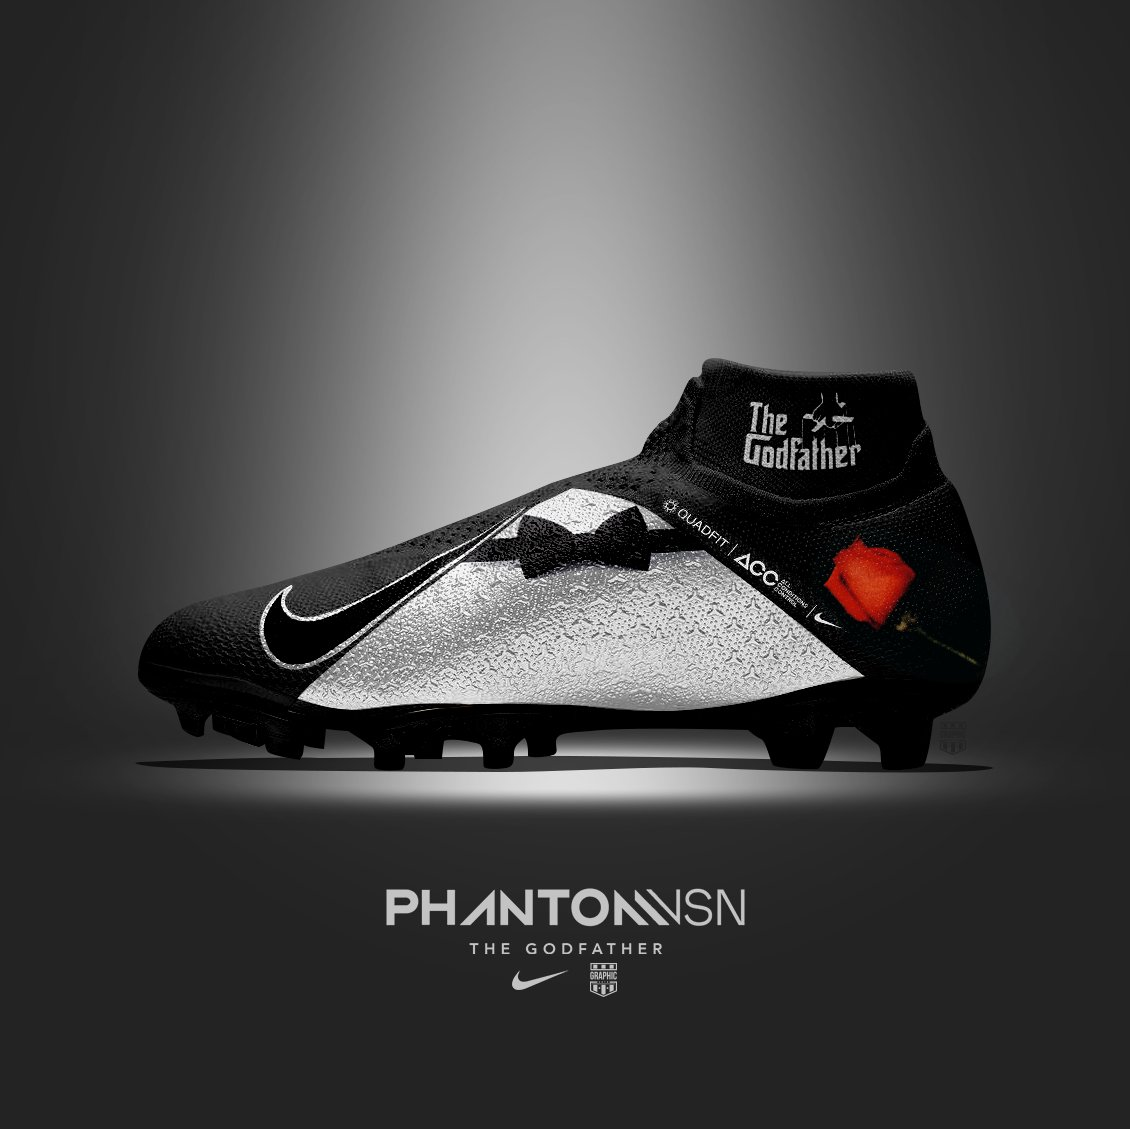 nike-phantom-vision-7eme-art-graphic-united-le-parrain